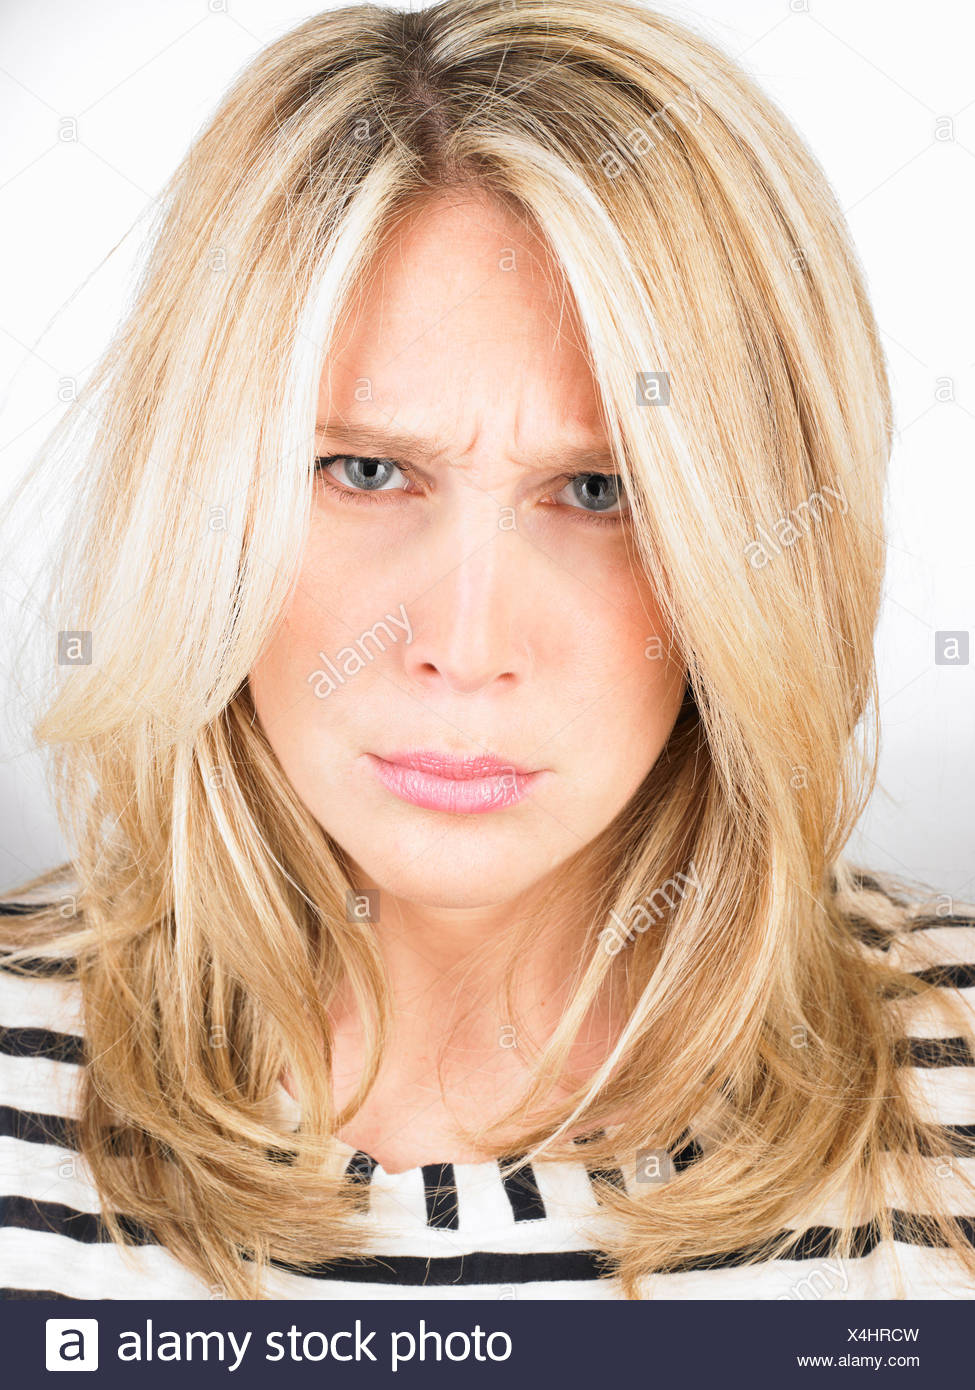 Woman scowling - Stock Image